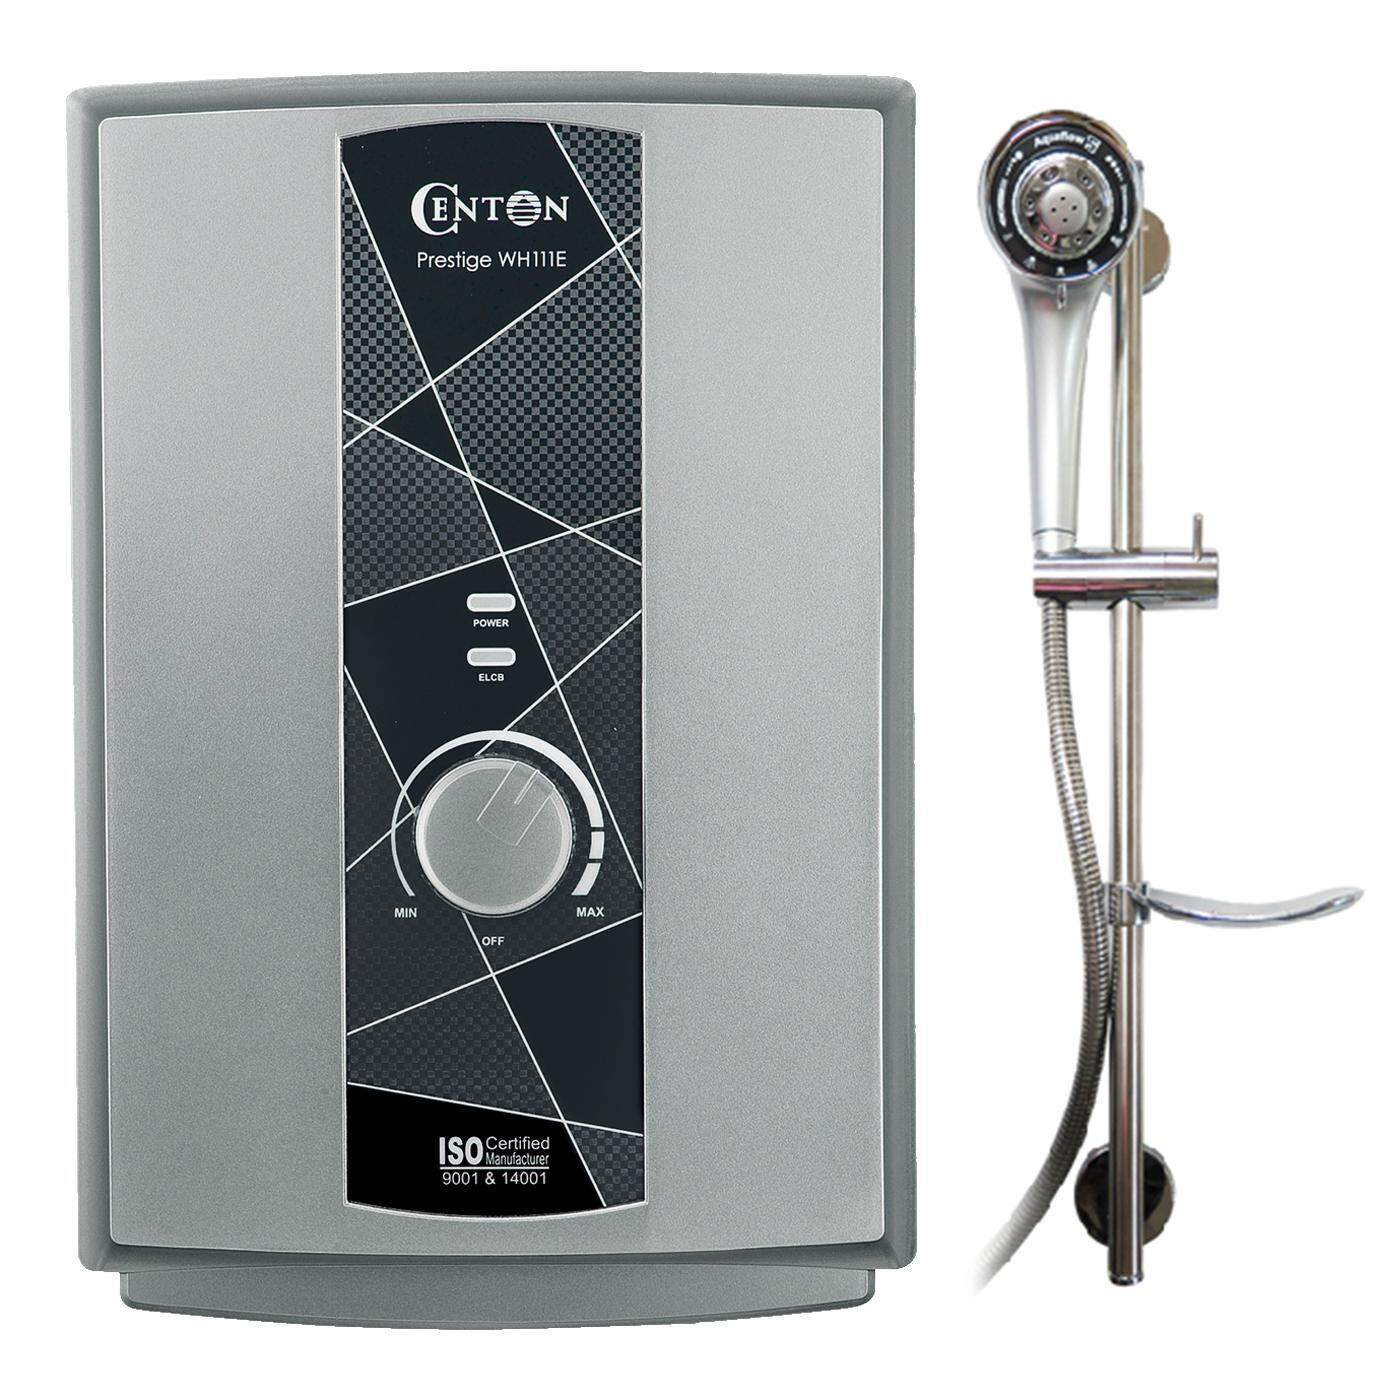 CENTON Instant Shower Water Heater - Prestige Series (2 color options  no pump)